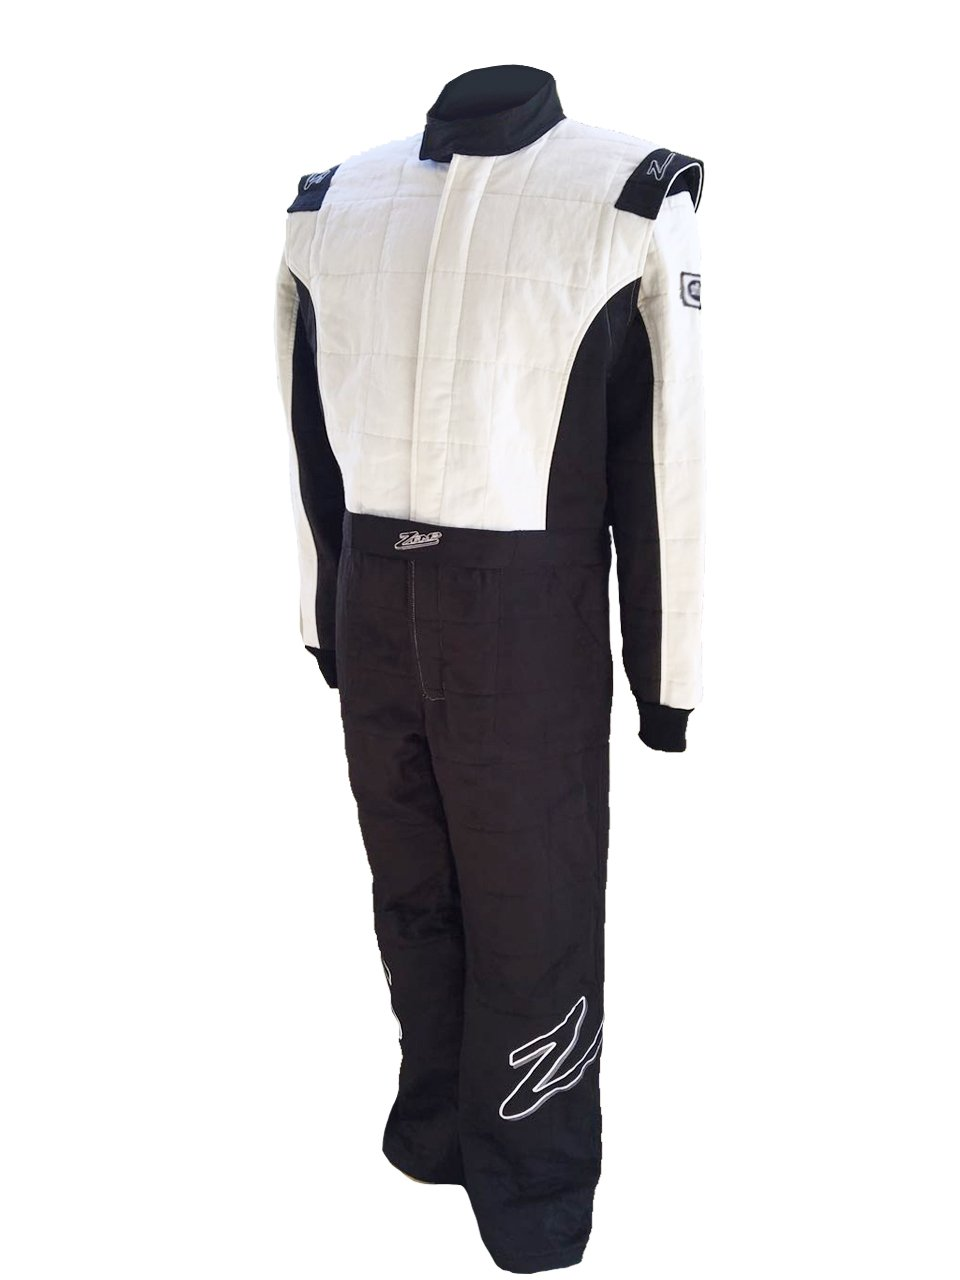 Zamp Men's Suit Multi Layer Black and White X-Large